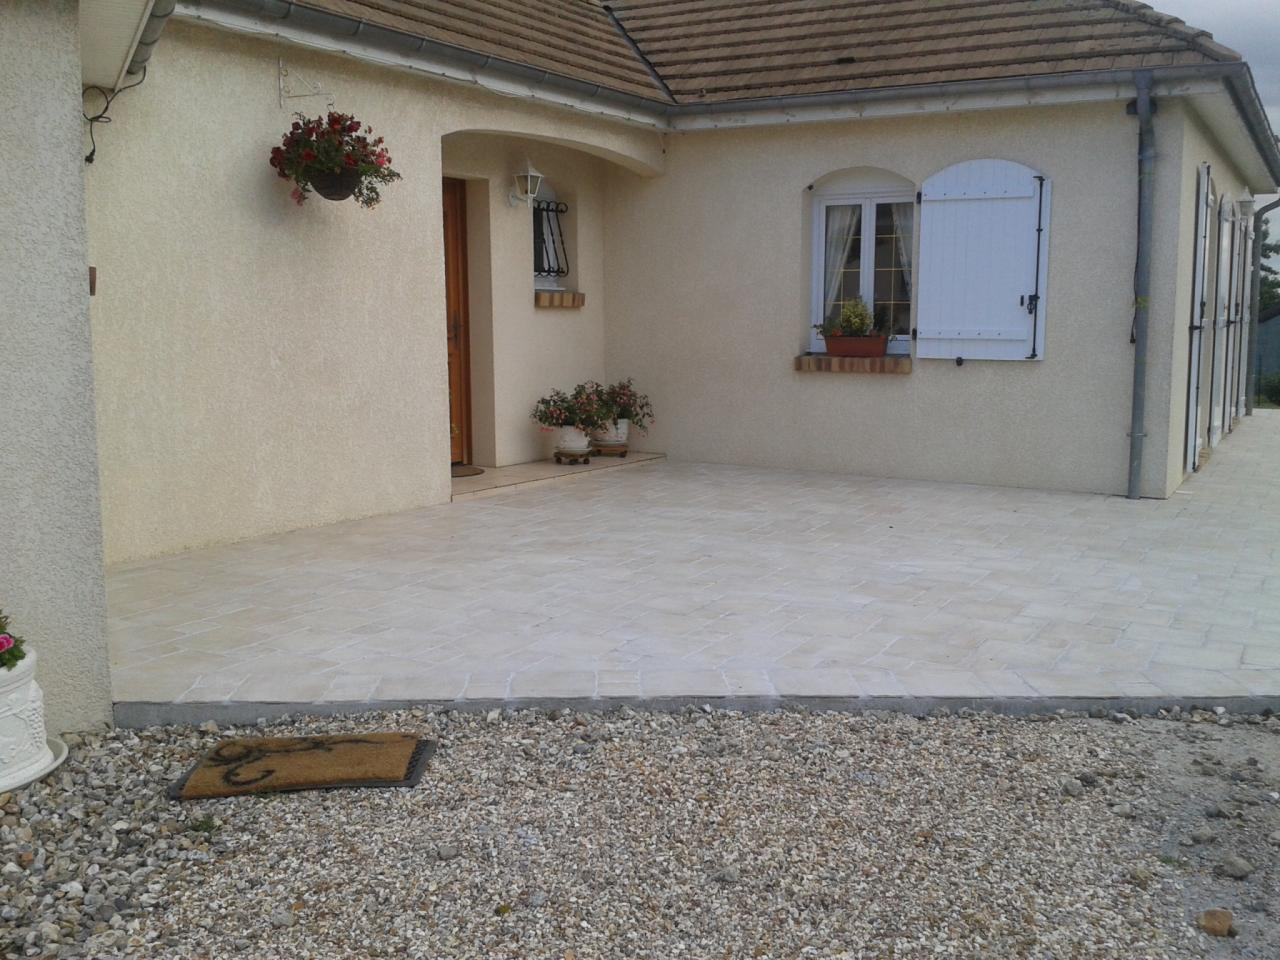 Carrelage fa ence ma on ma onnerie arni res sur iton for Carrelage en faience